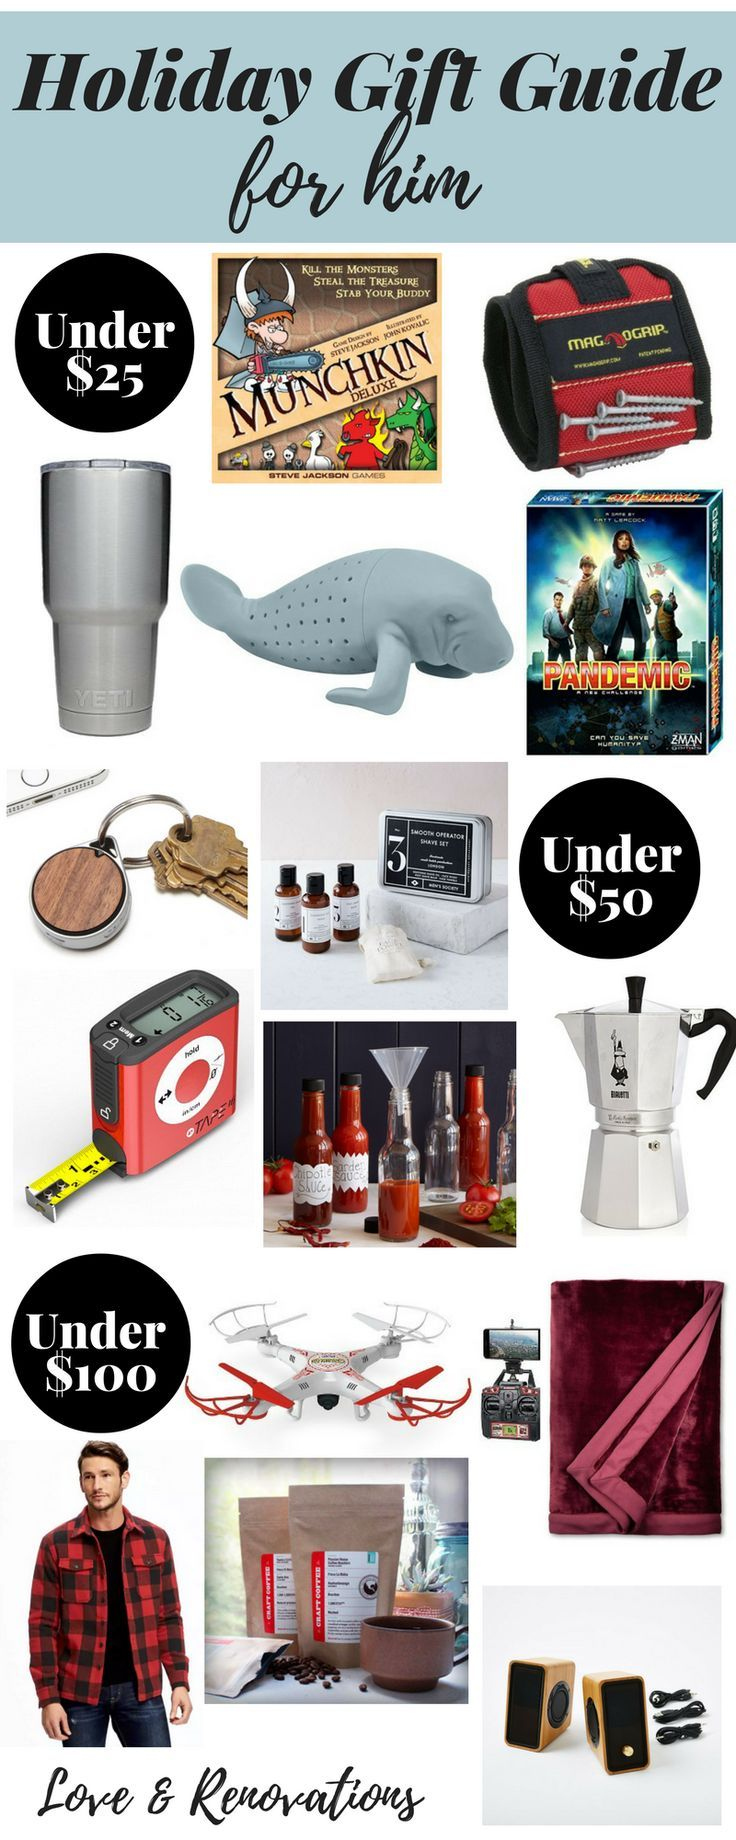 Christmas ideas for men who have everything - 2016 Holiday Gift Guide For Him Ideas For Christmas